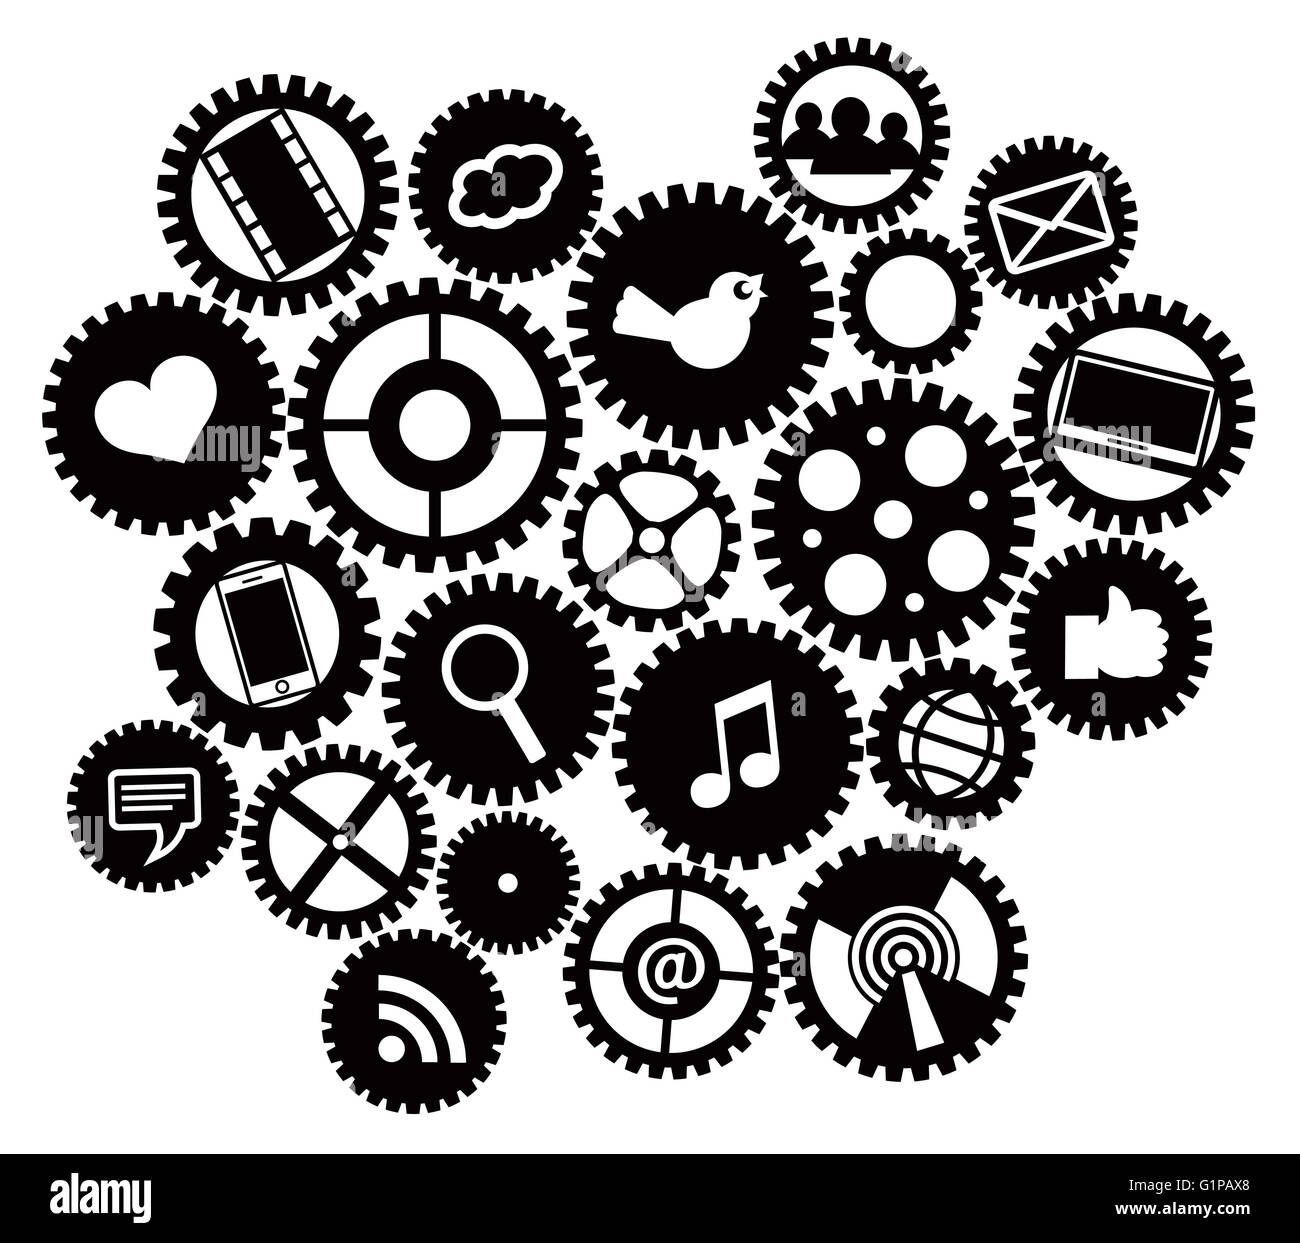 Machine Gears With Social Media Symbols Black Isolated On White